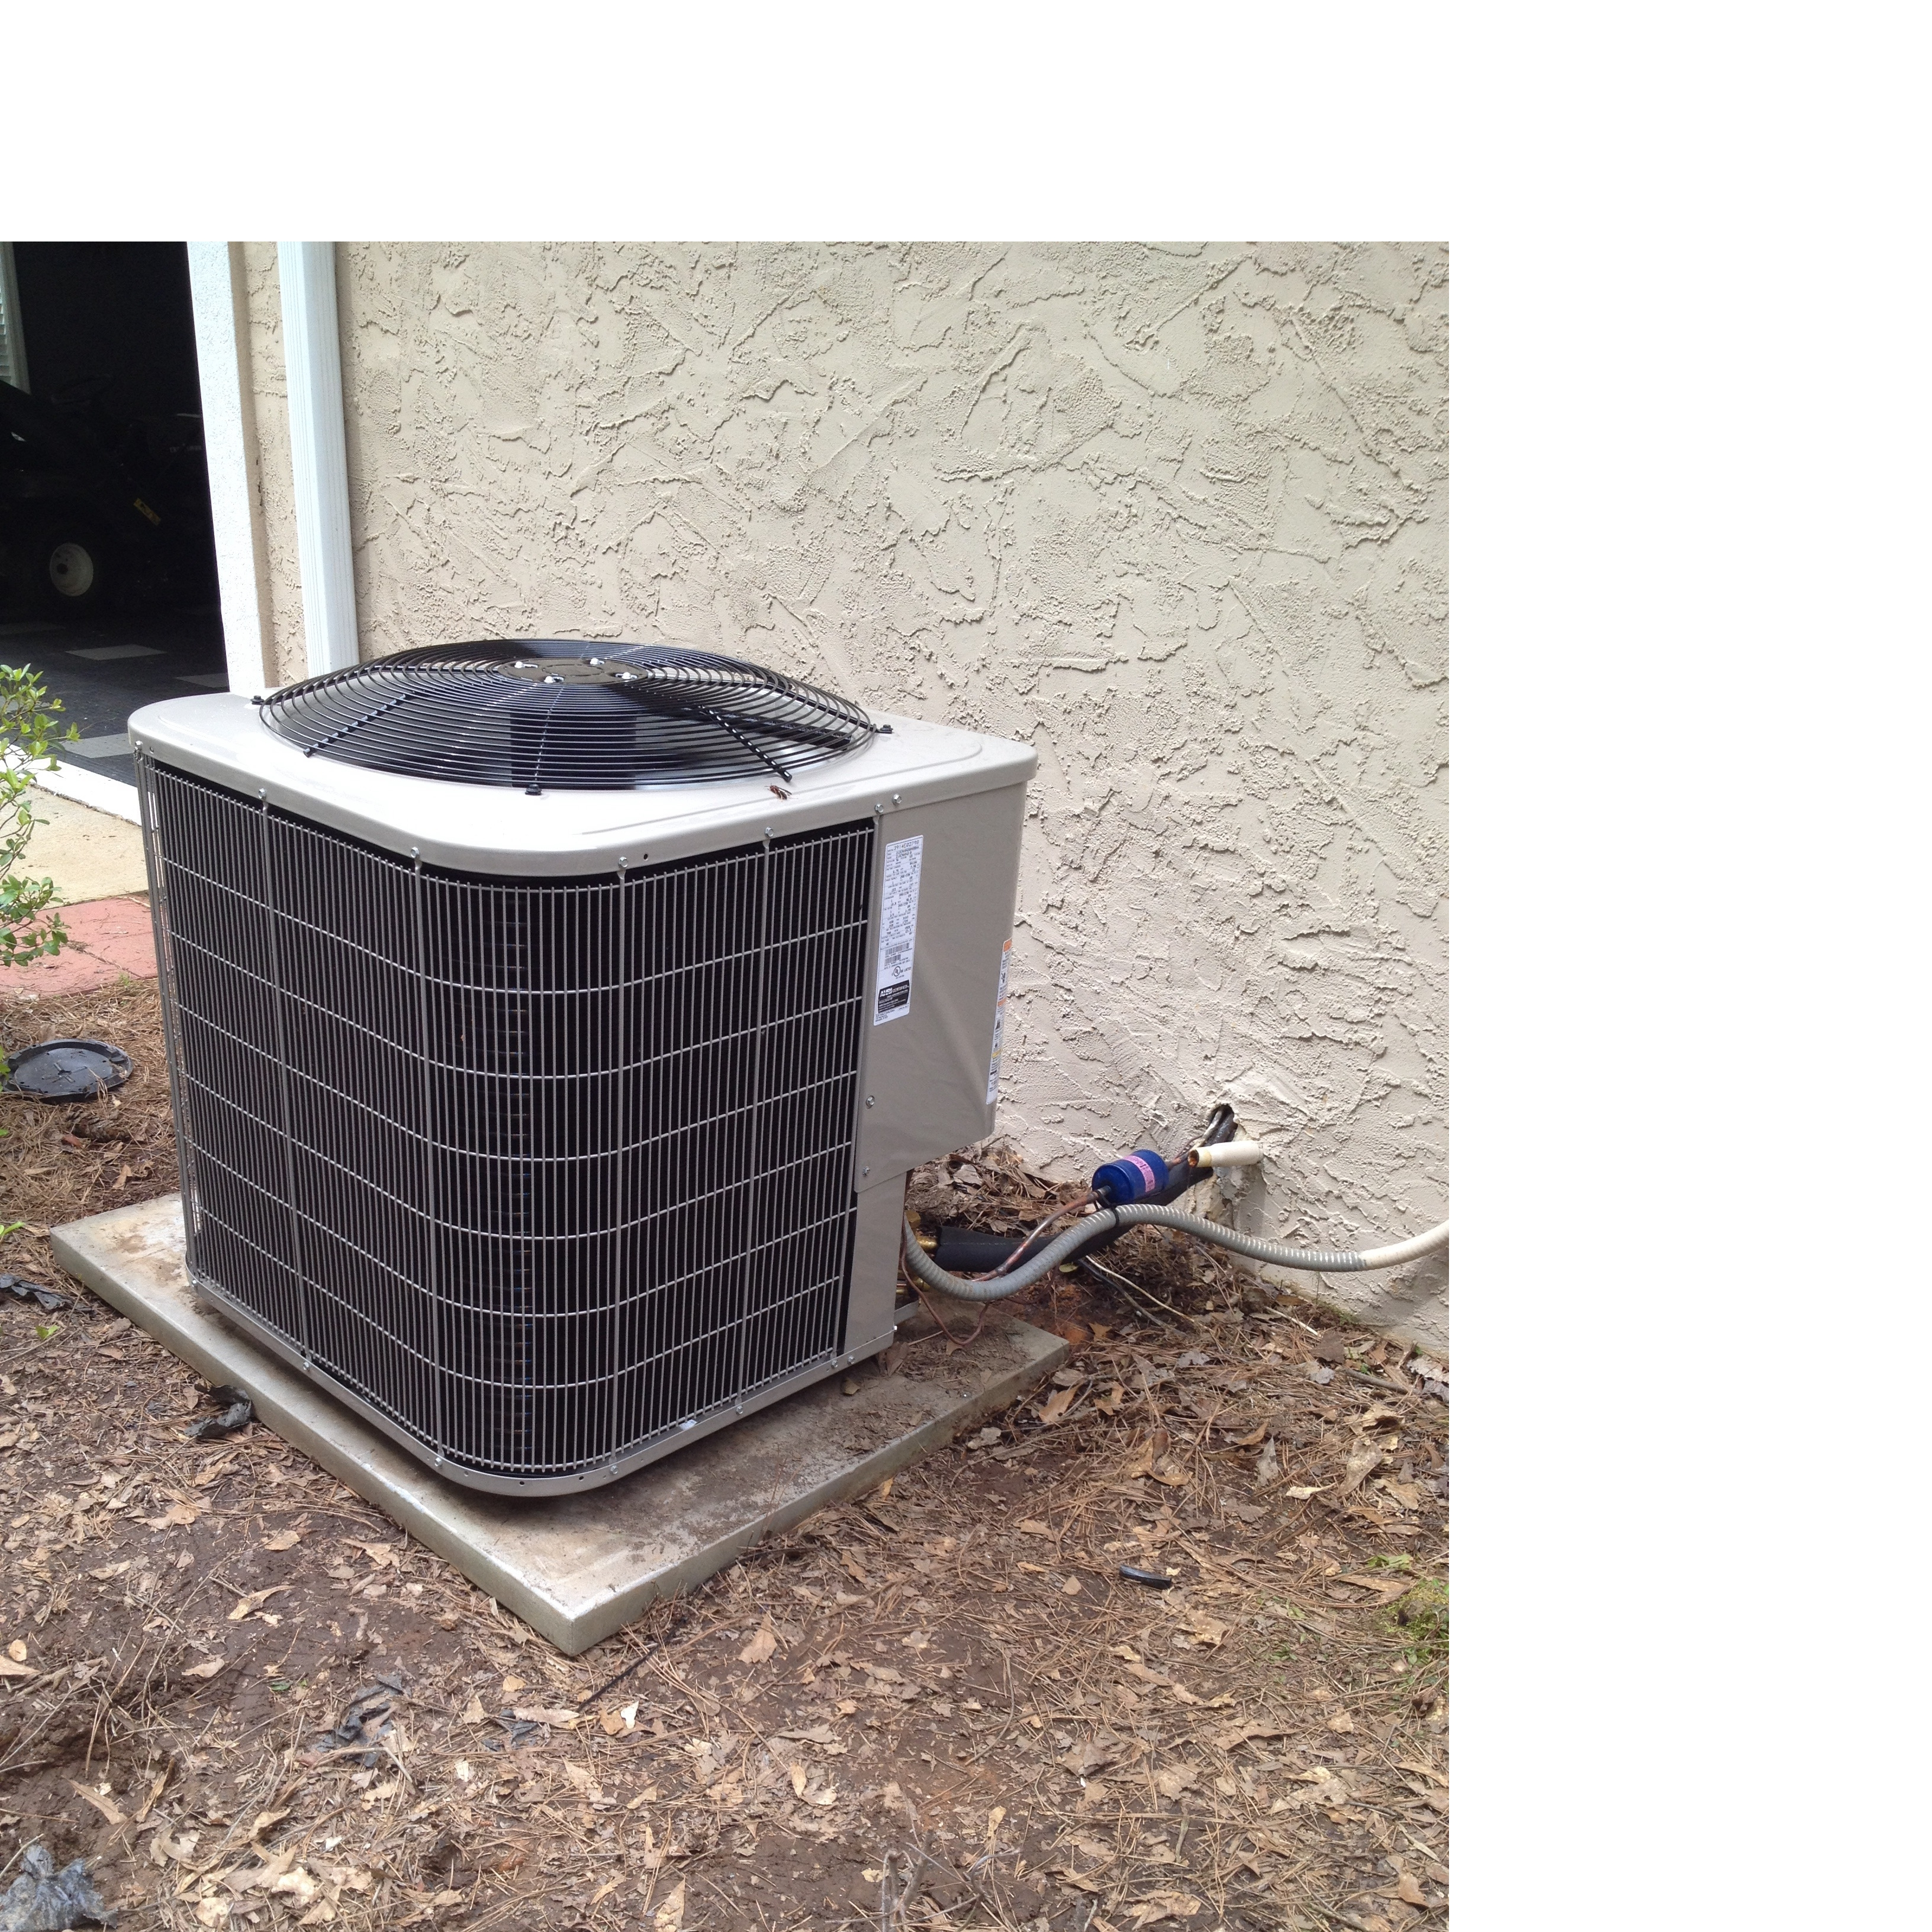 Air comfort services - Opelika, AL - Heating & Air Conditioning